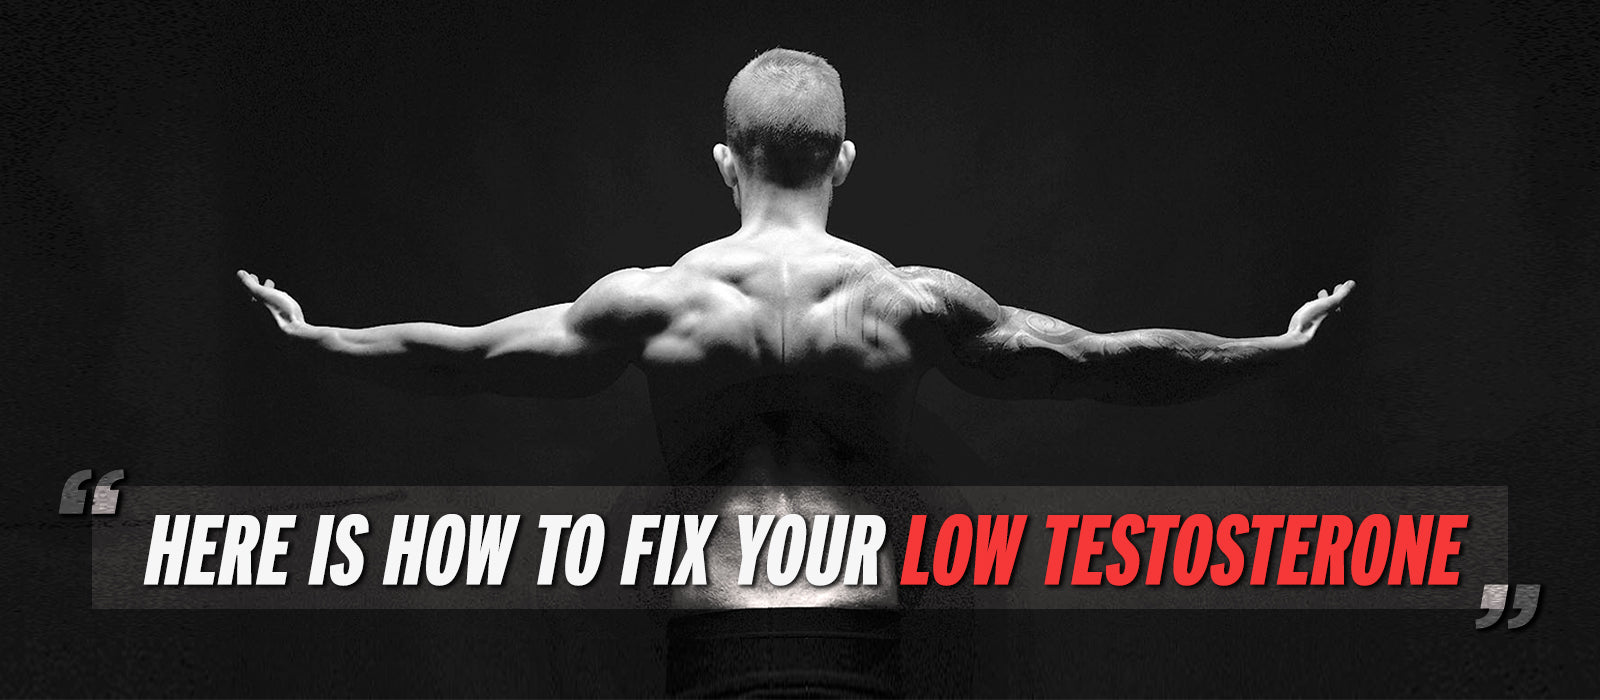 Here Is How To Fix Your Low Testosterone